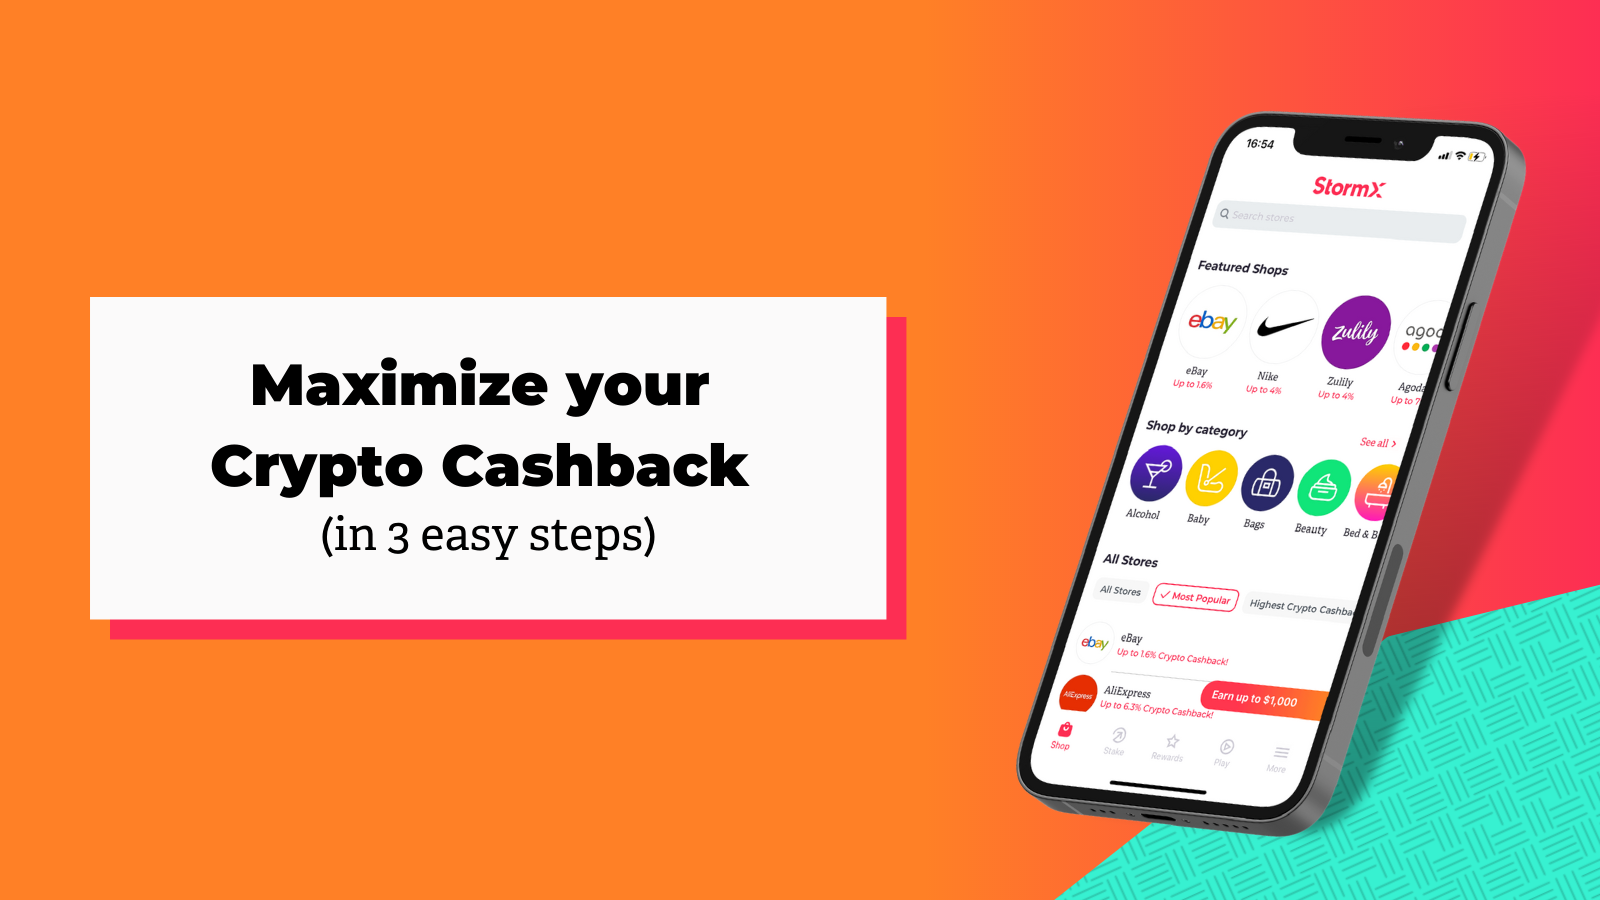 Maximize your Crypto Cashback (in 3 easy steps)